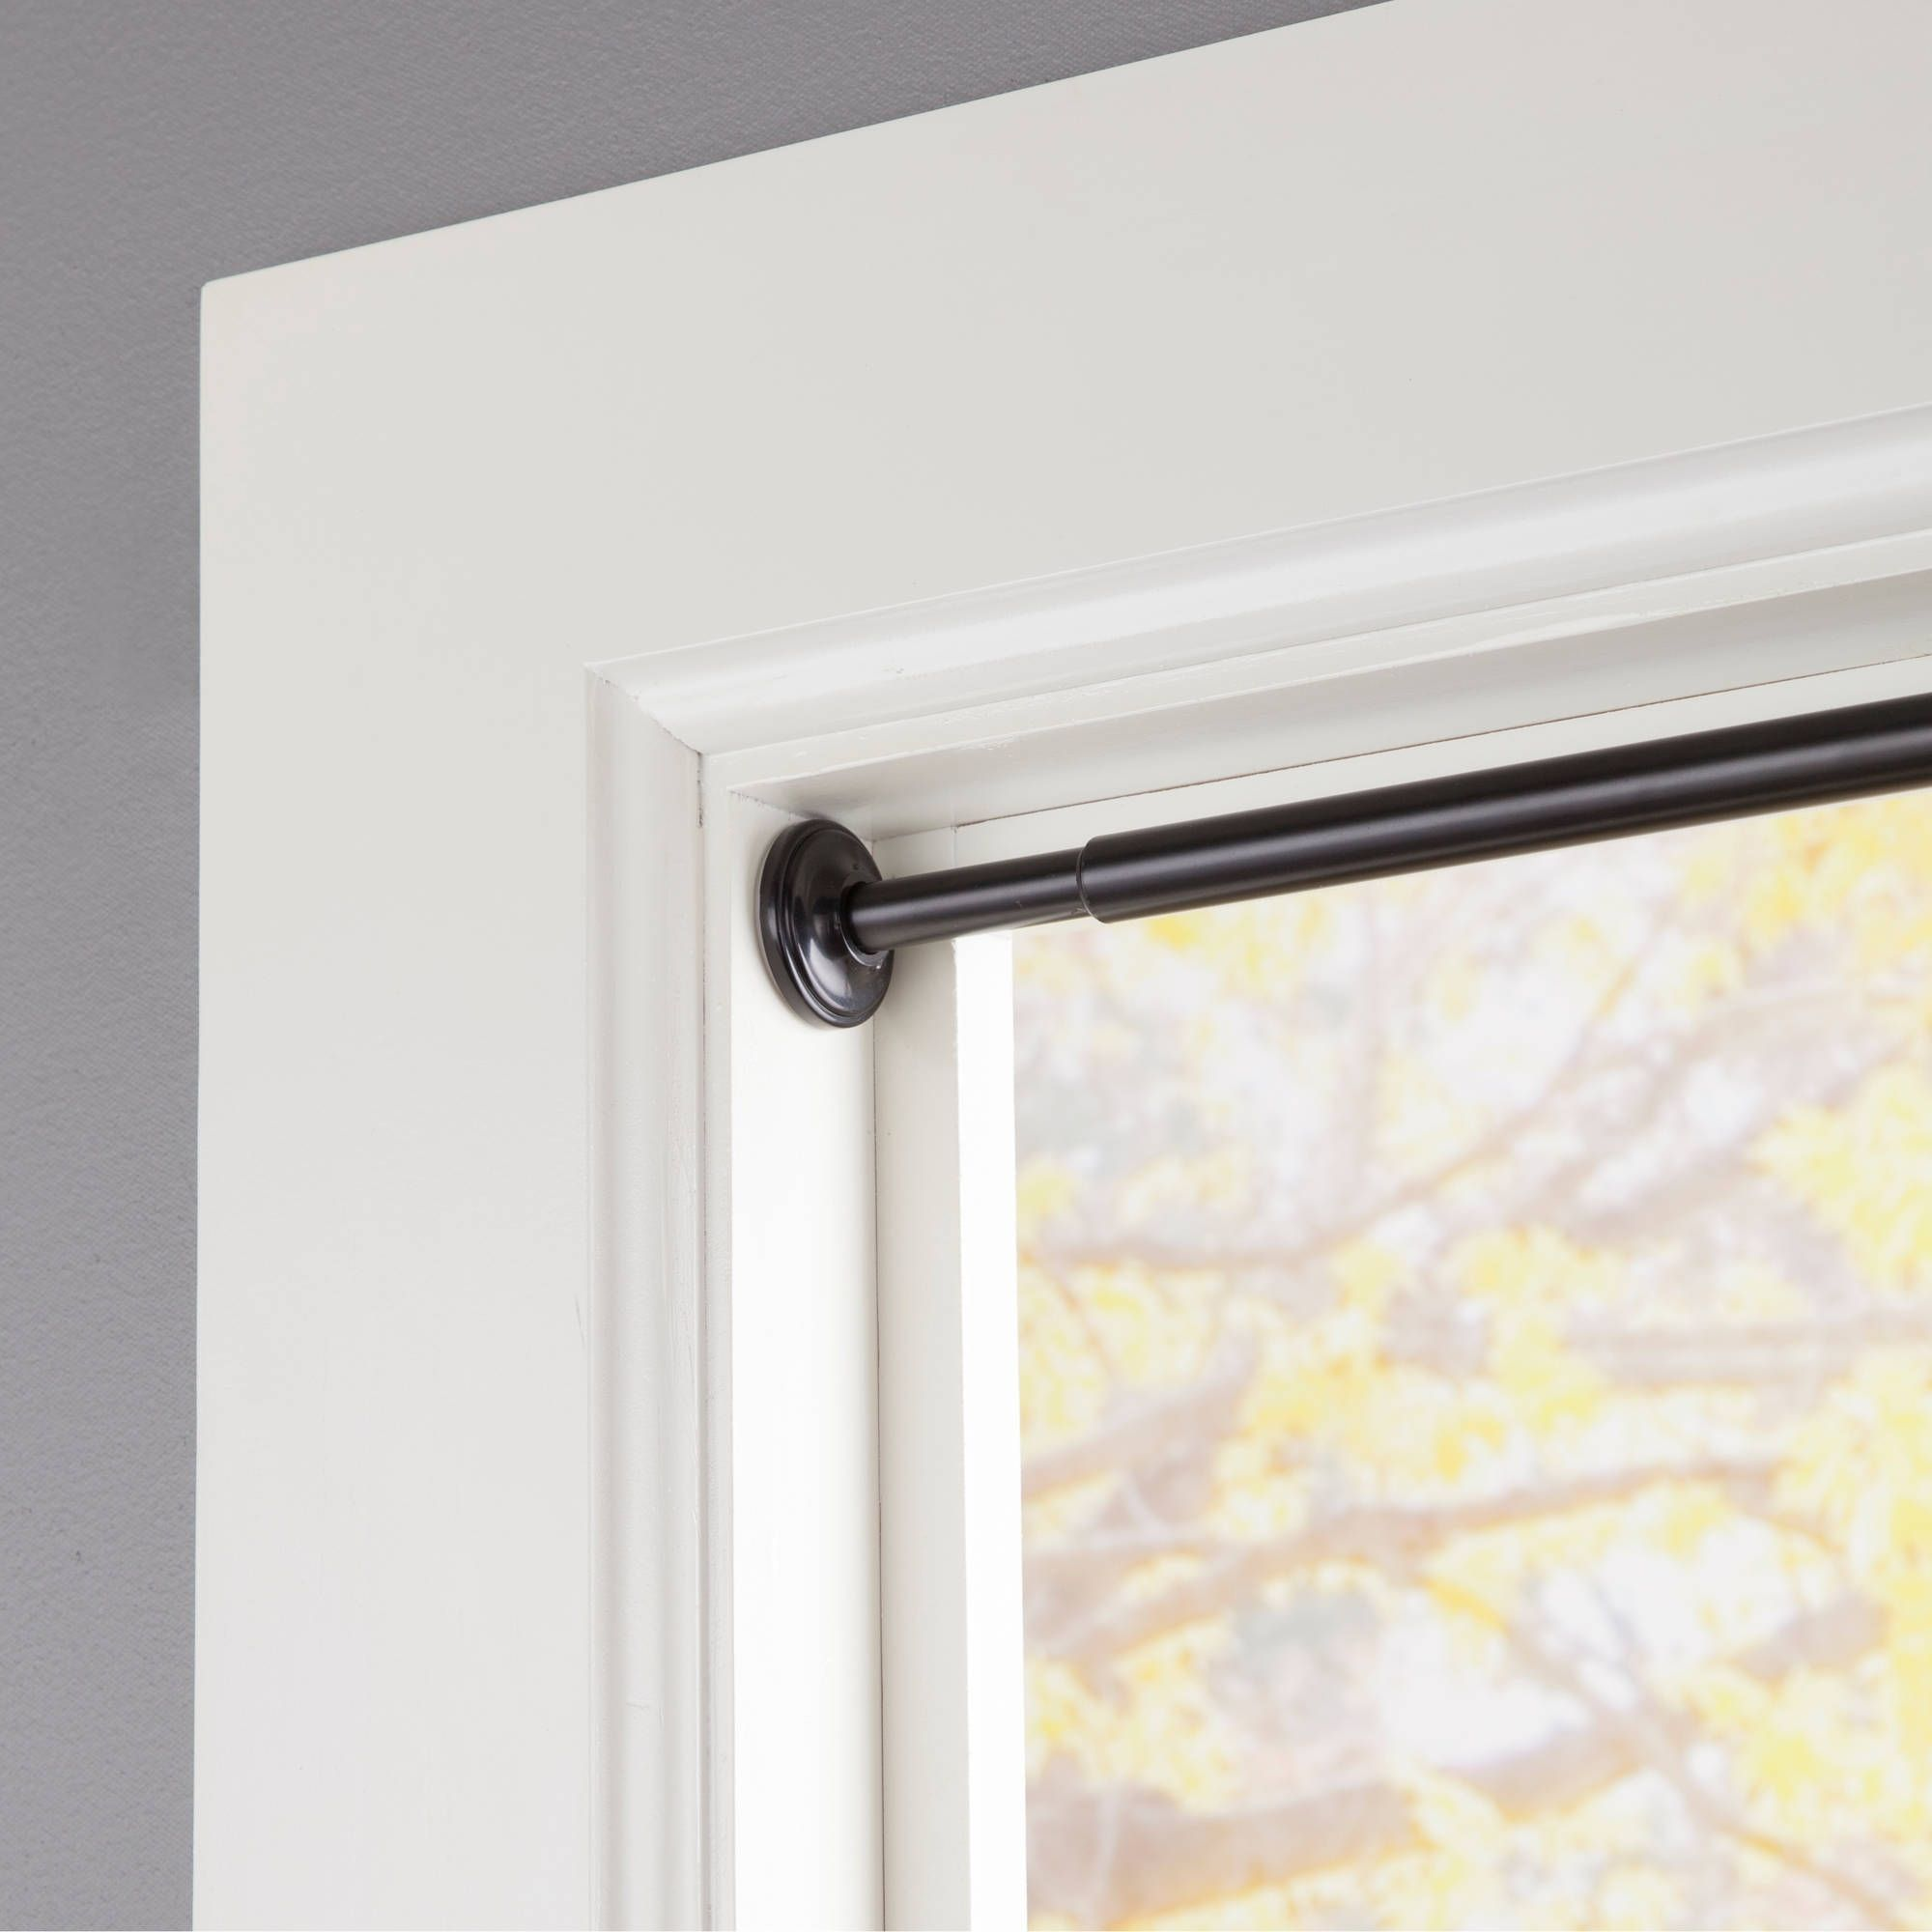 Lowes Curtain Rods Tips To Help You Find The Best Choice In 2020